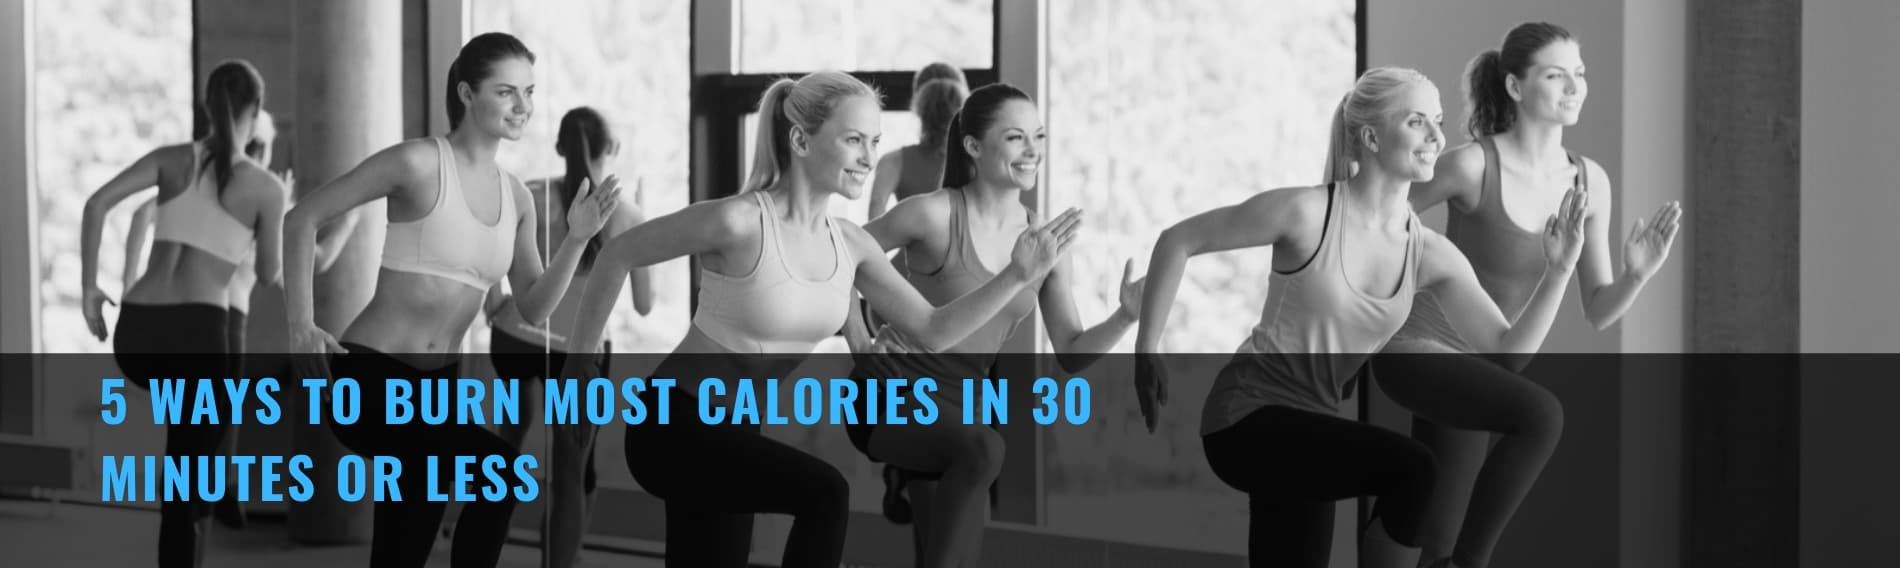 5 Ways to Burn Most Calories in 30 Minutes or Less